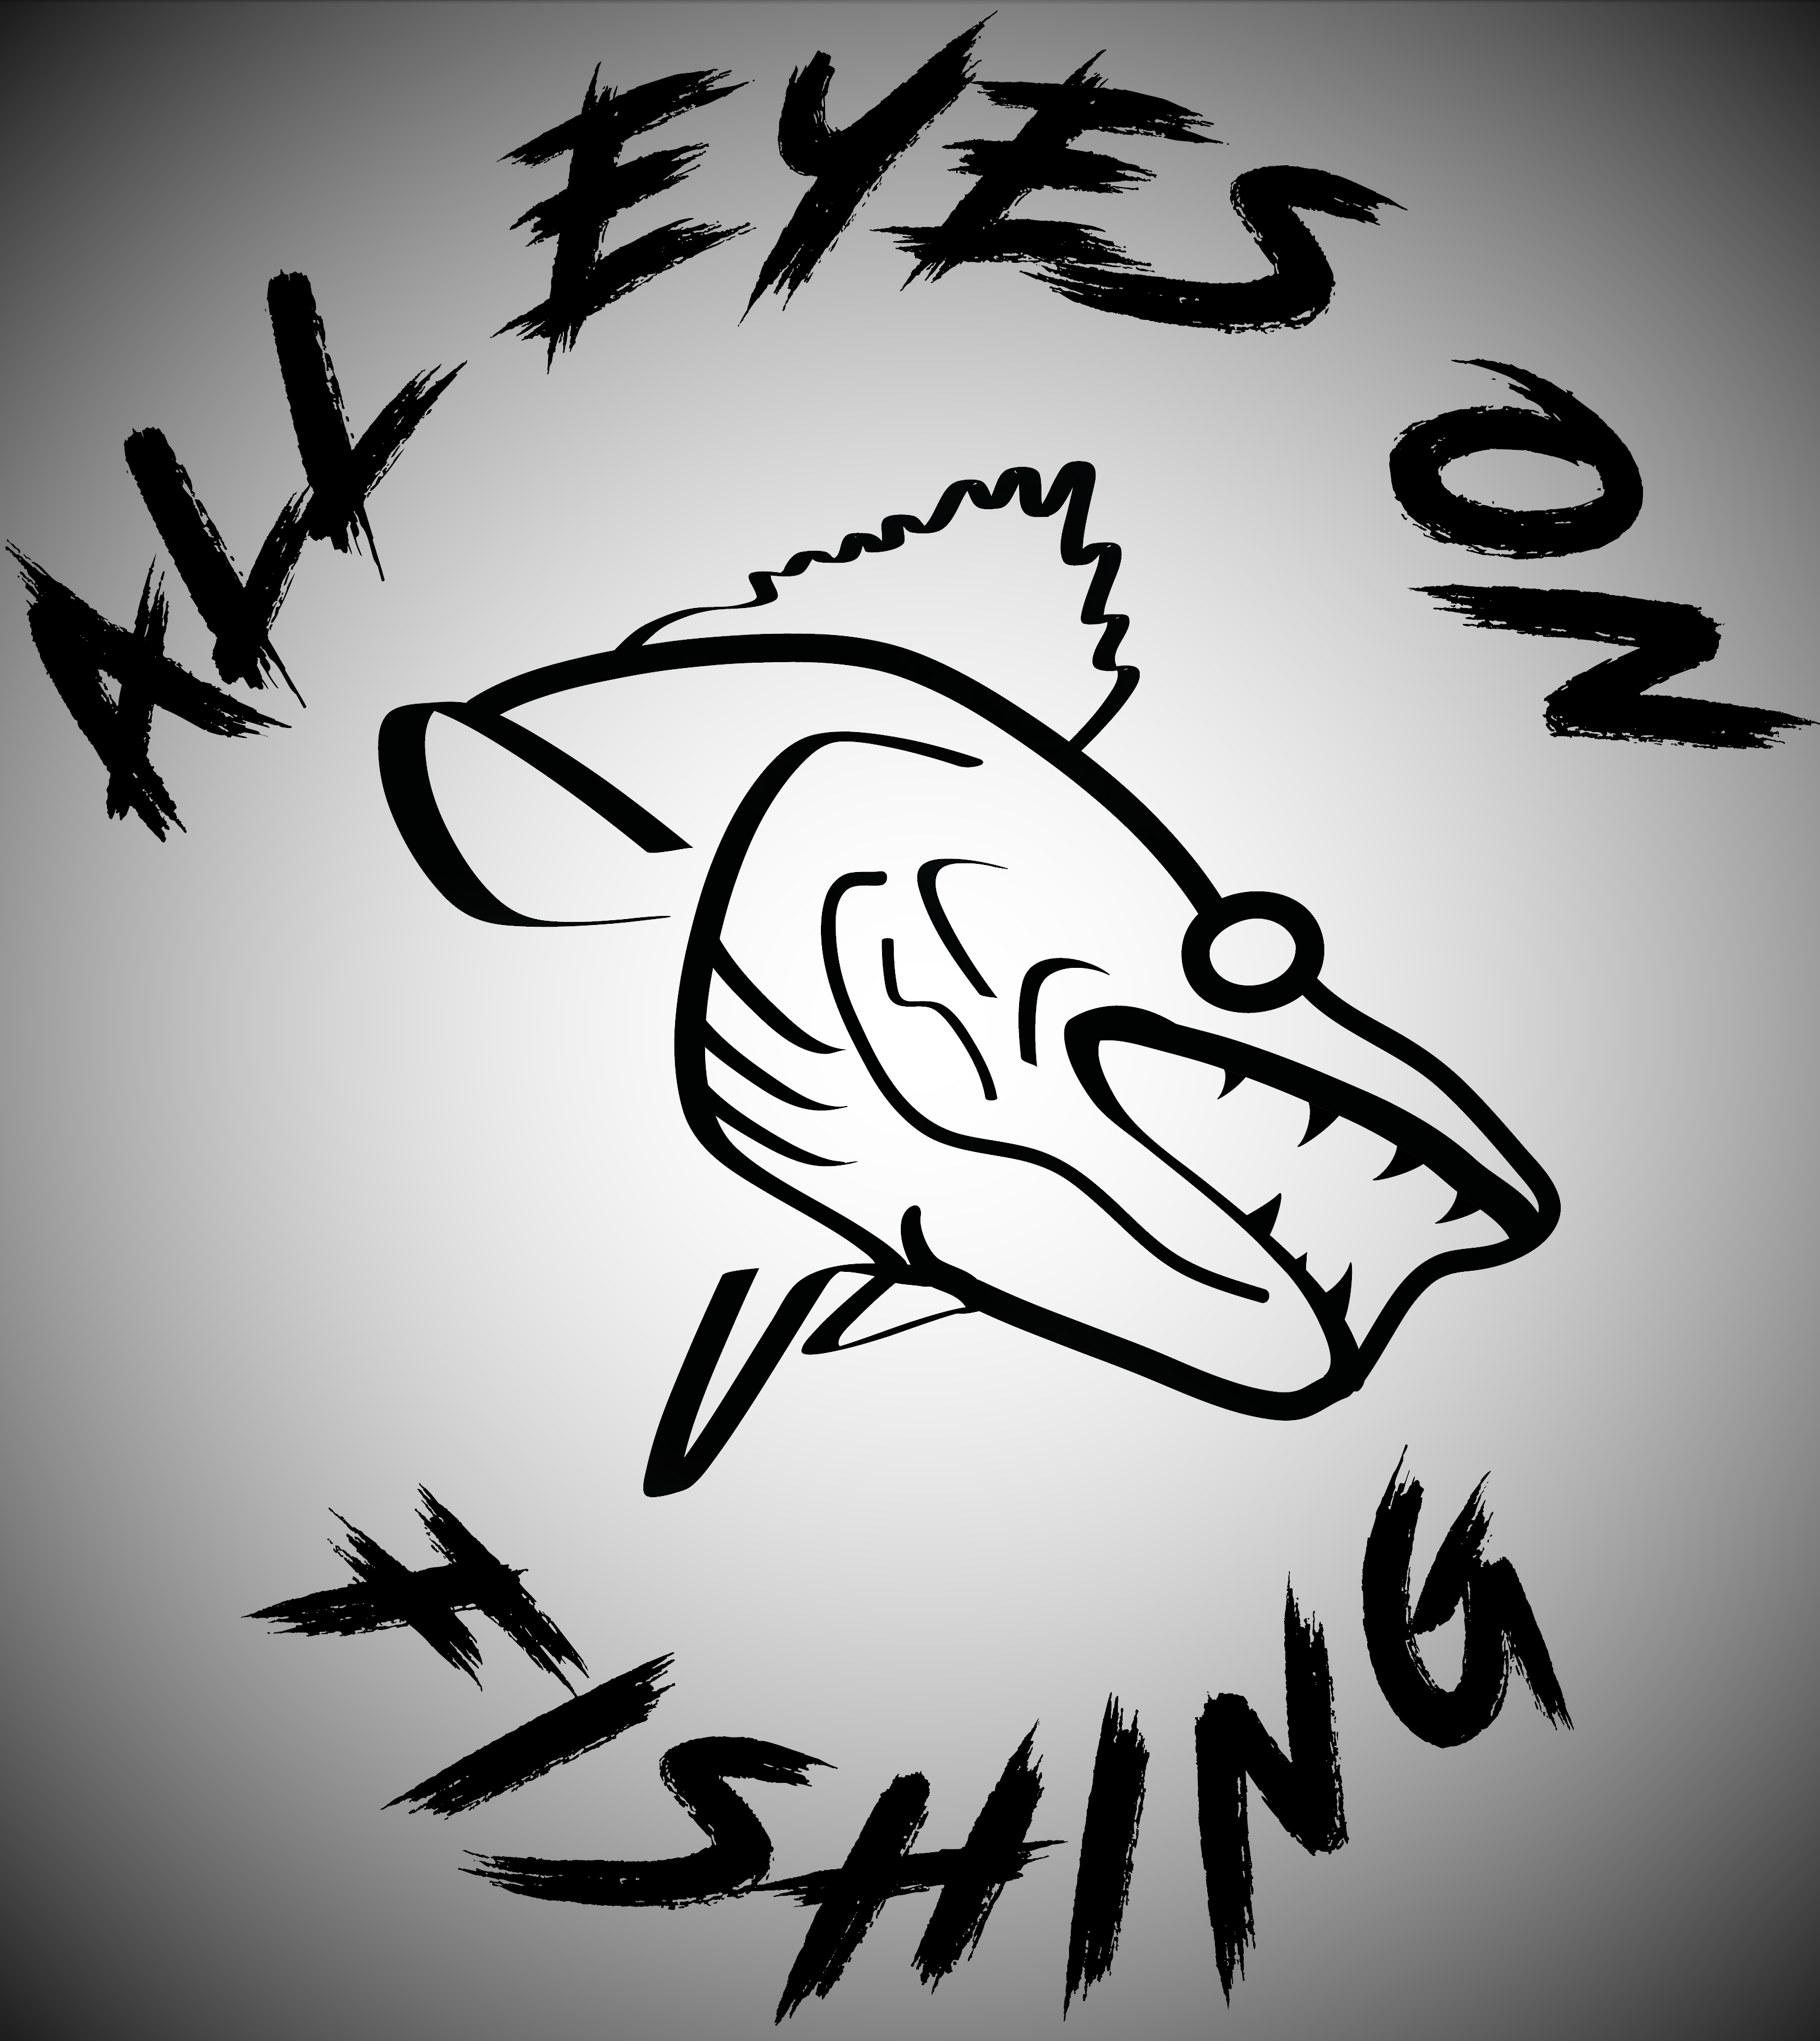 ALL EYES ON FISHING LLC